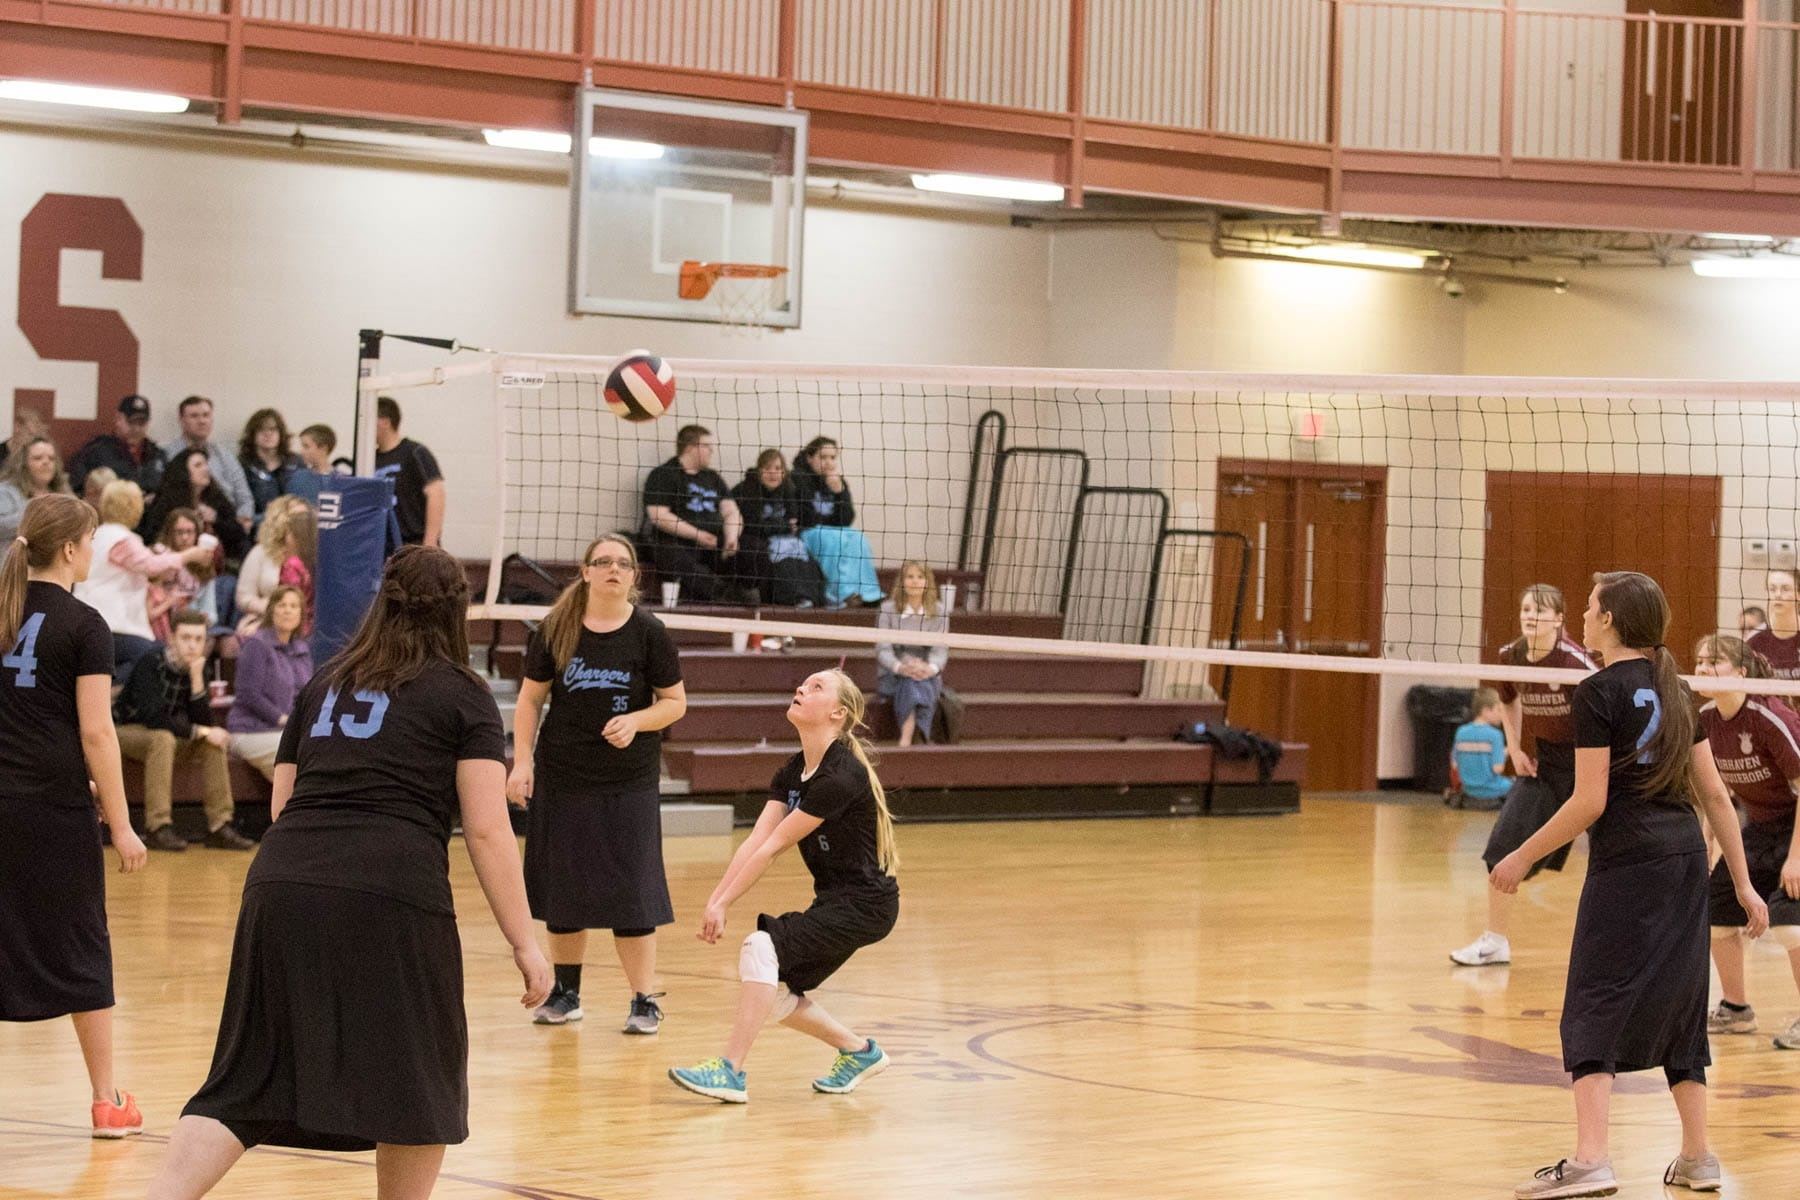 Fairhaven Baptist Academy Volleyball Basketball Tournament 2016 (37 of 40)